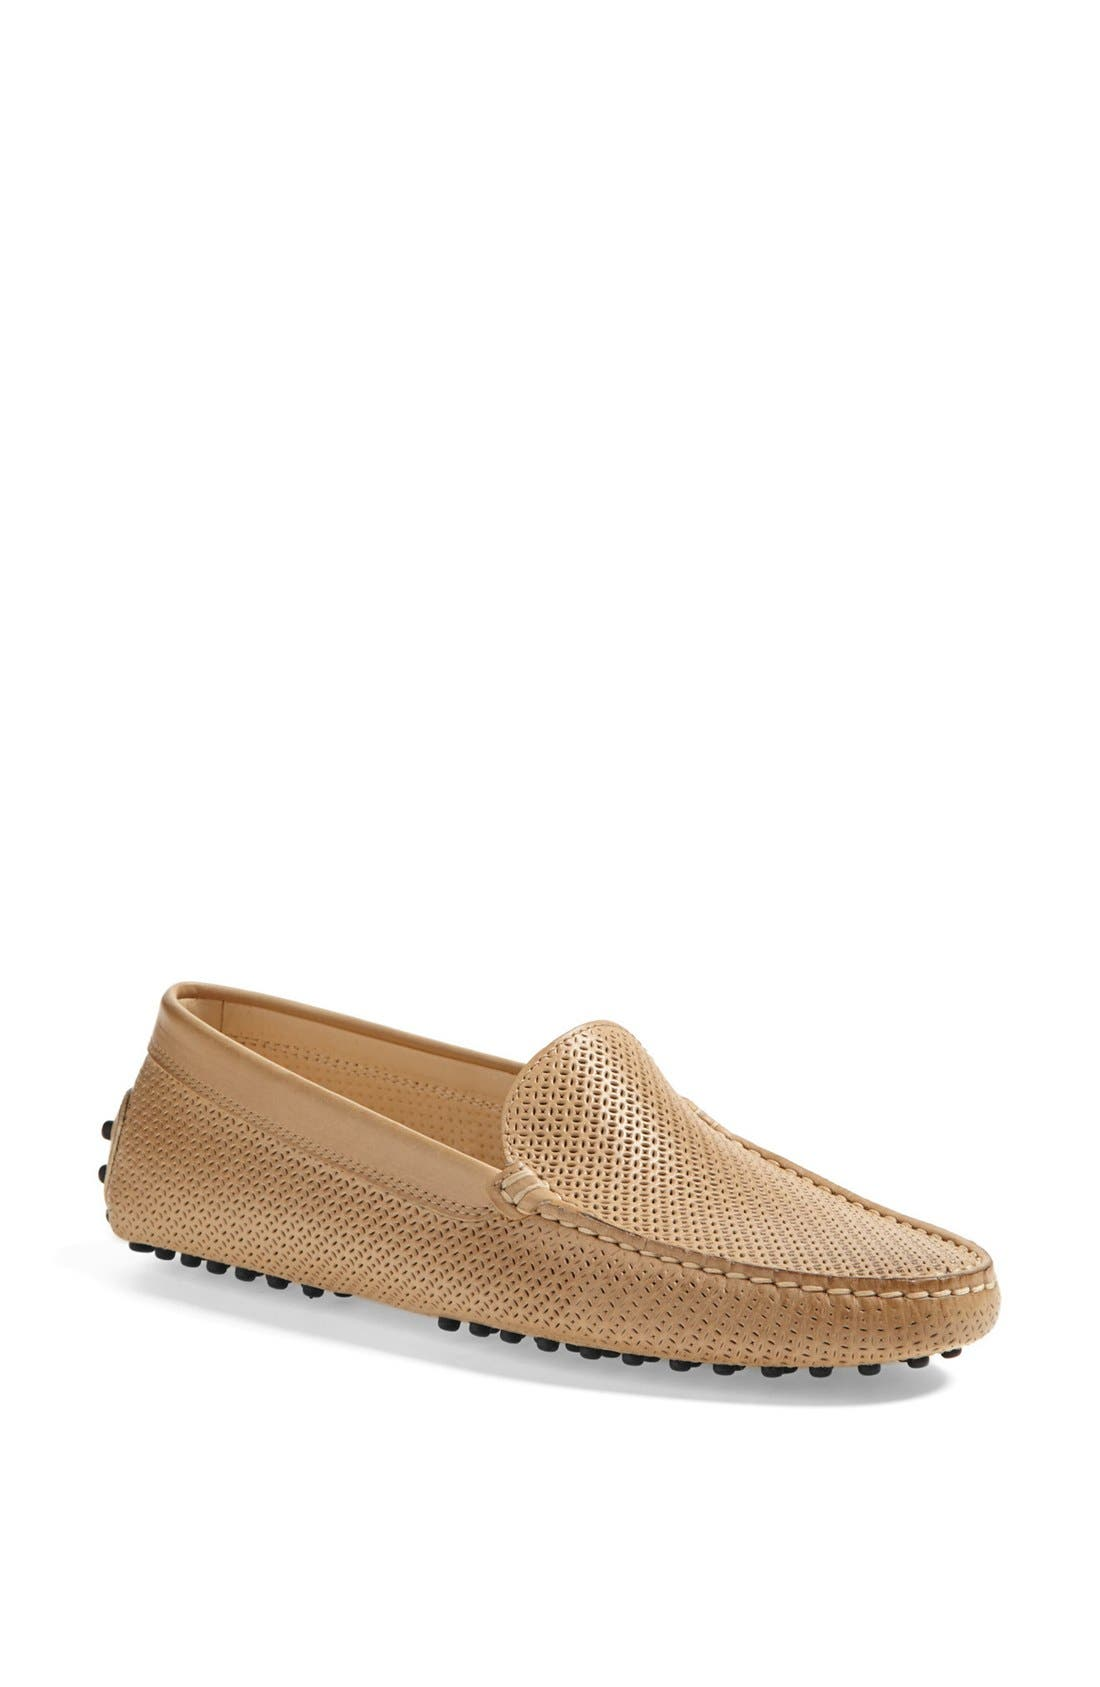 Alternate Image 1 Selected - Tod's 'Gommini' Perforated Leather Driving Moccasin